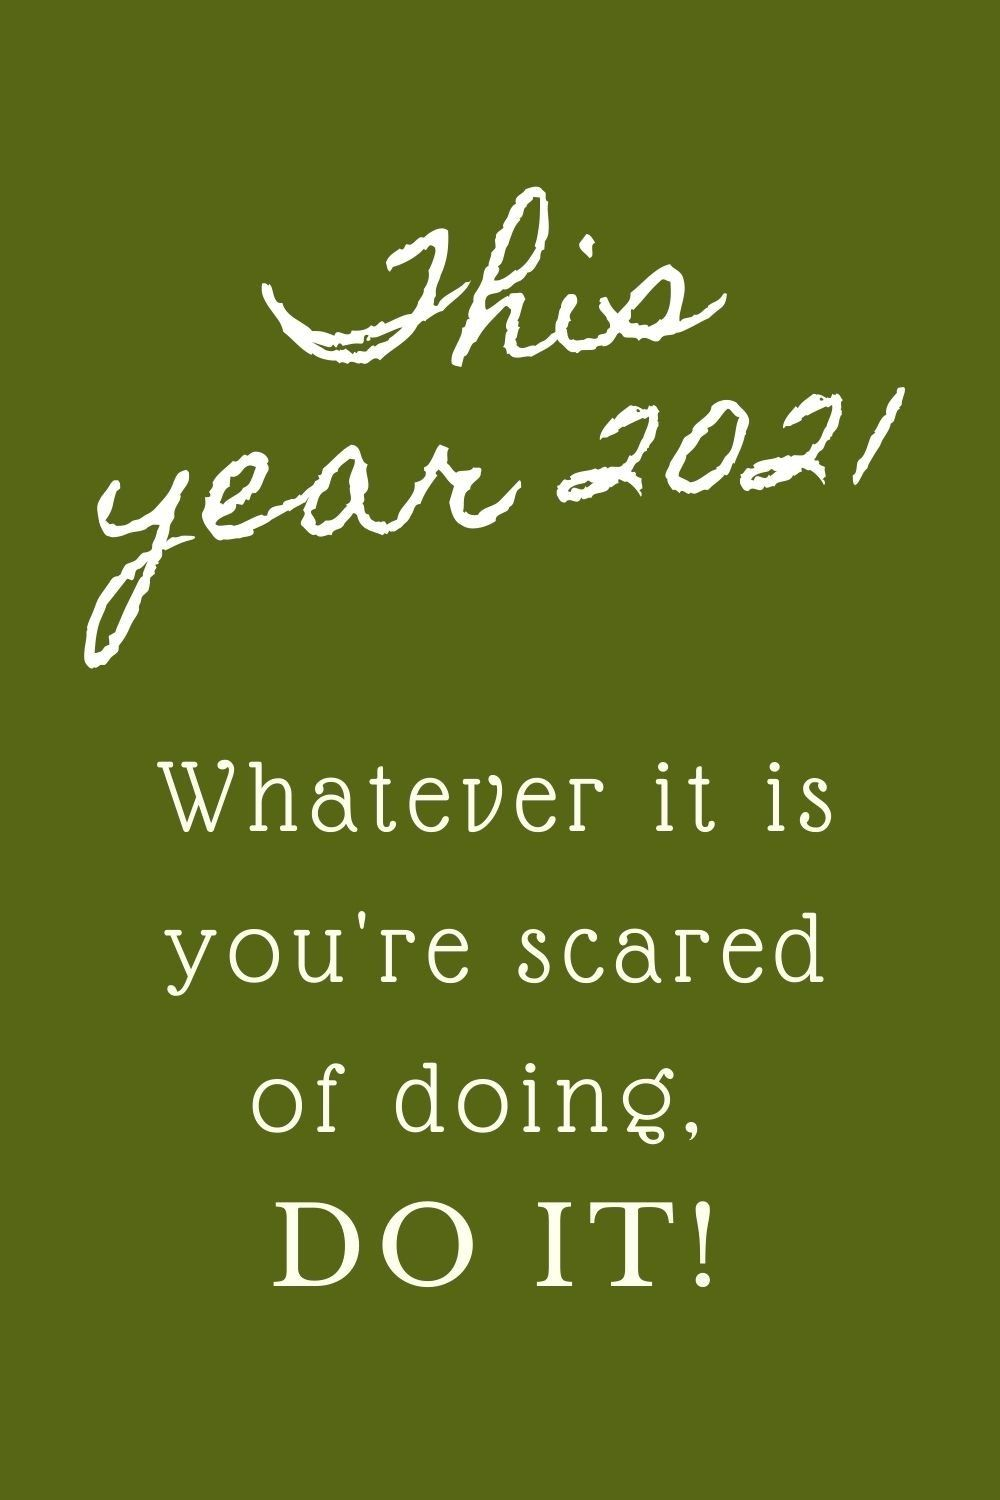 Happy new year 2021 wishes quotes for friends and well